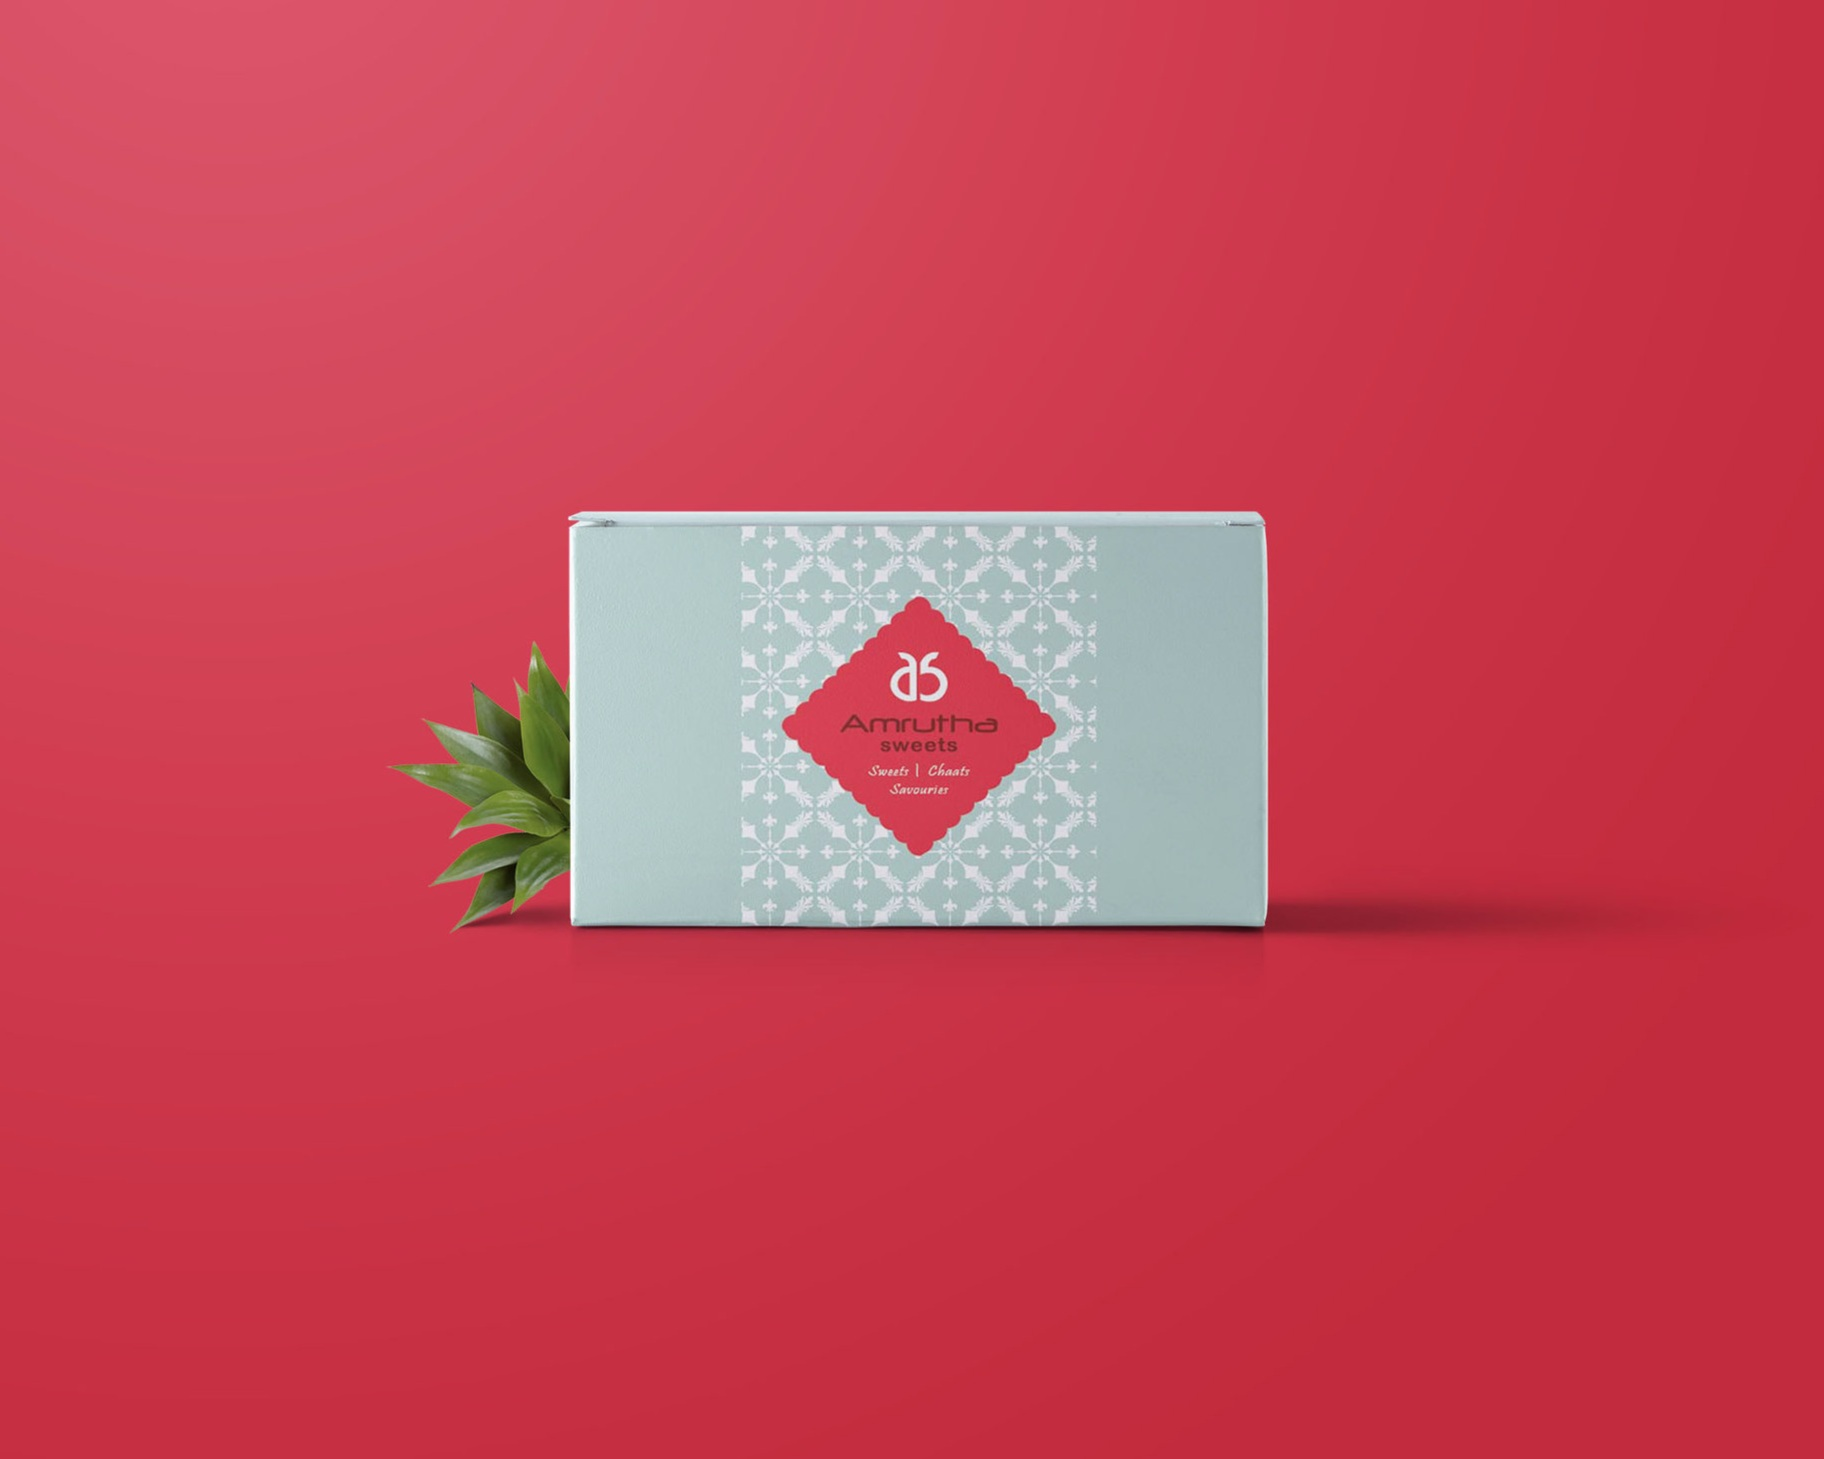 Amrutha+Sweets+Standard+Package+Design